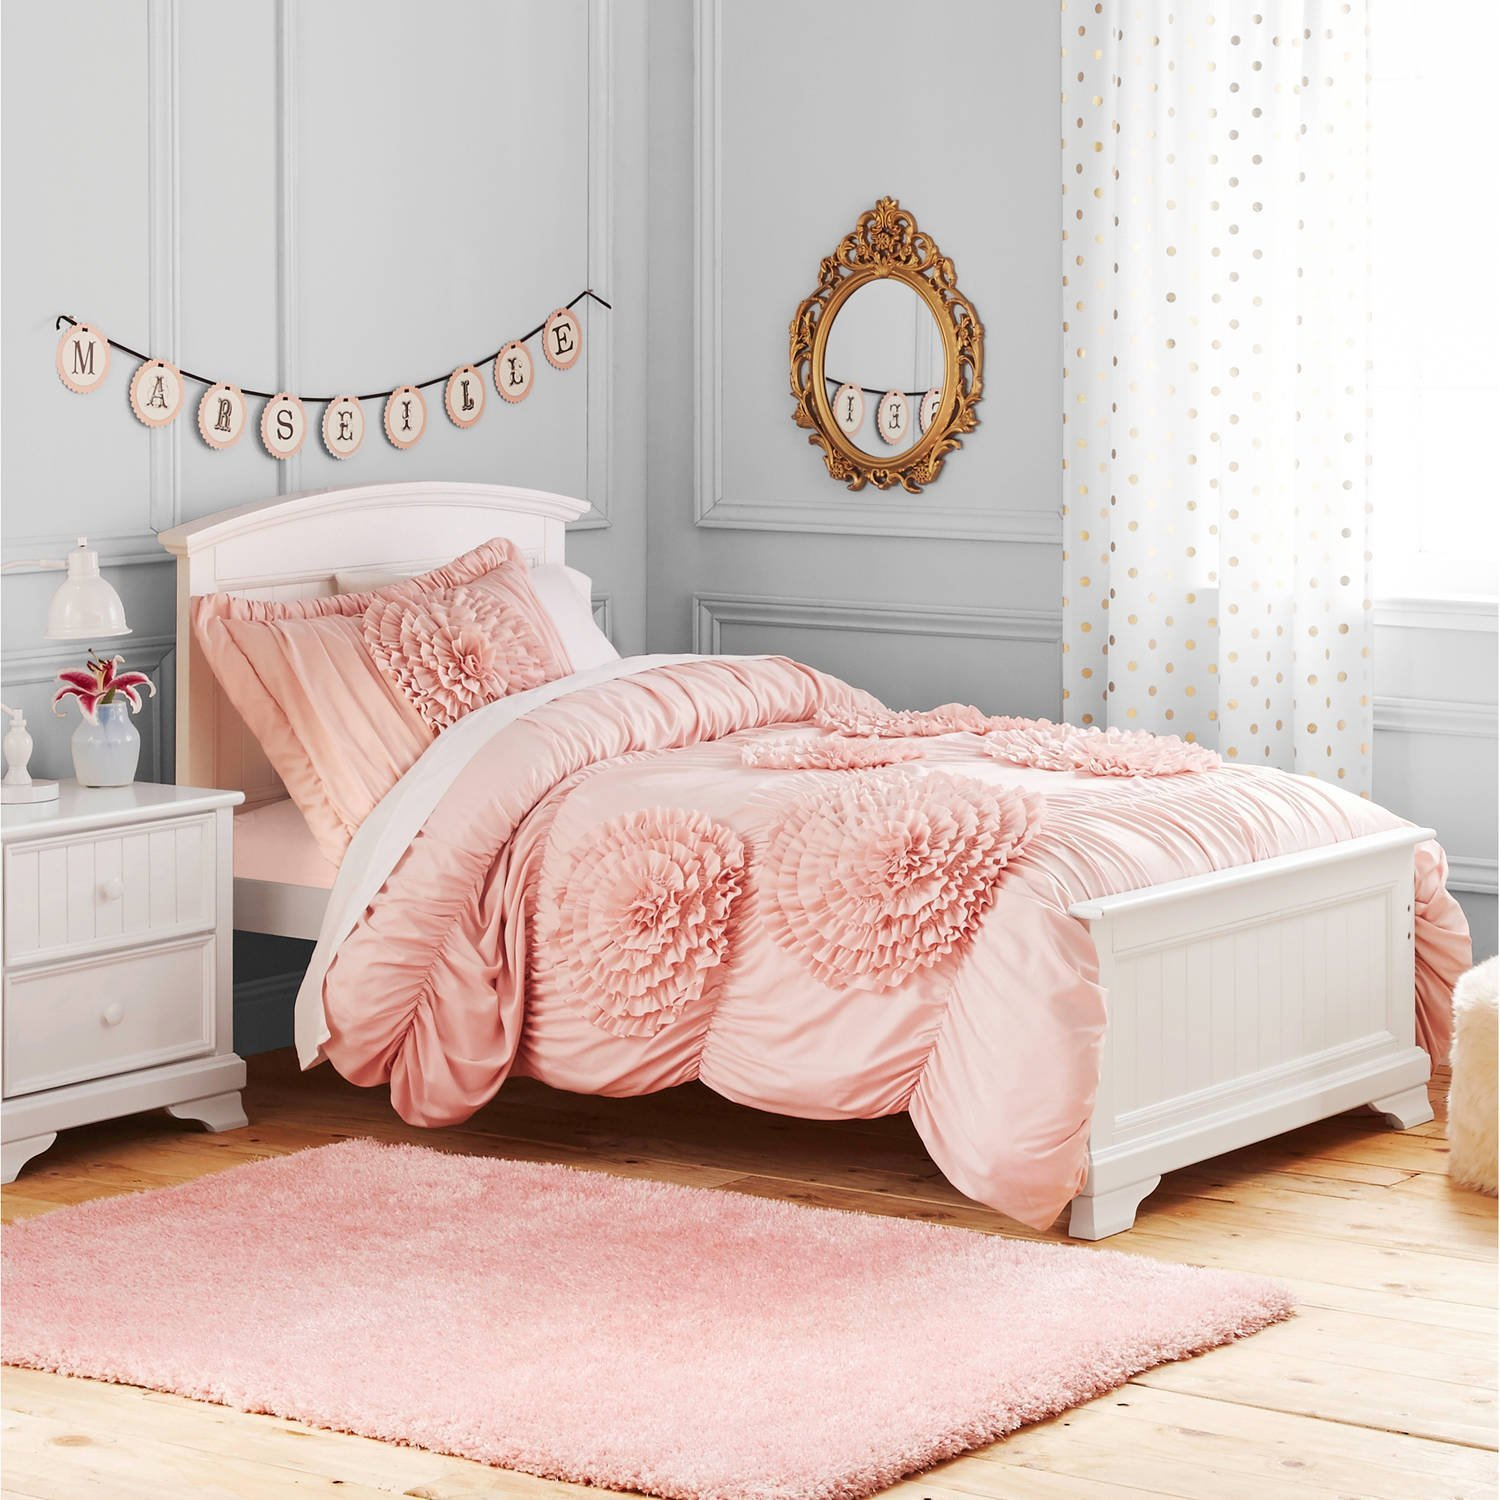 Buy 2 Piece Kids Blush Pink Luxury Ruffle Floral Pattern Comforter Twin Set Handcrafted Ruffled Light Pink Flowers Bedding Ruched Texture Design Boho Chic Hippie Indie Bohemian Style Plush Polyester In Cheap